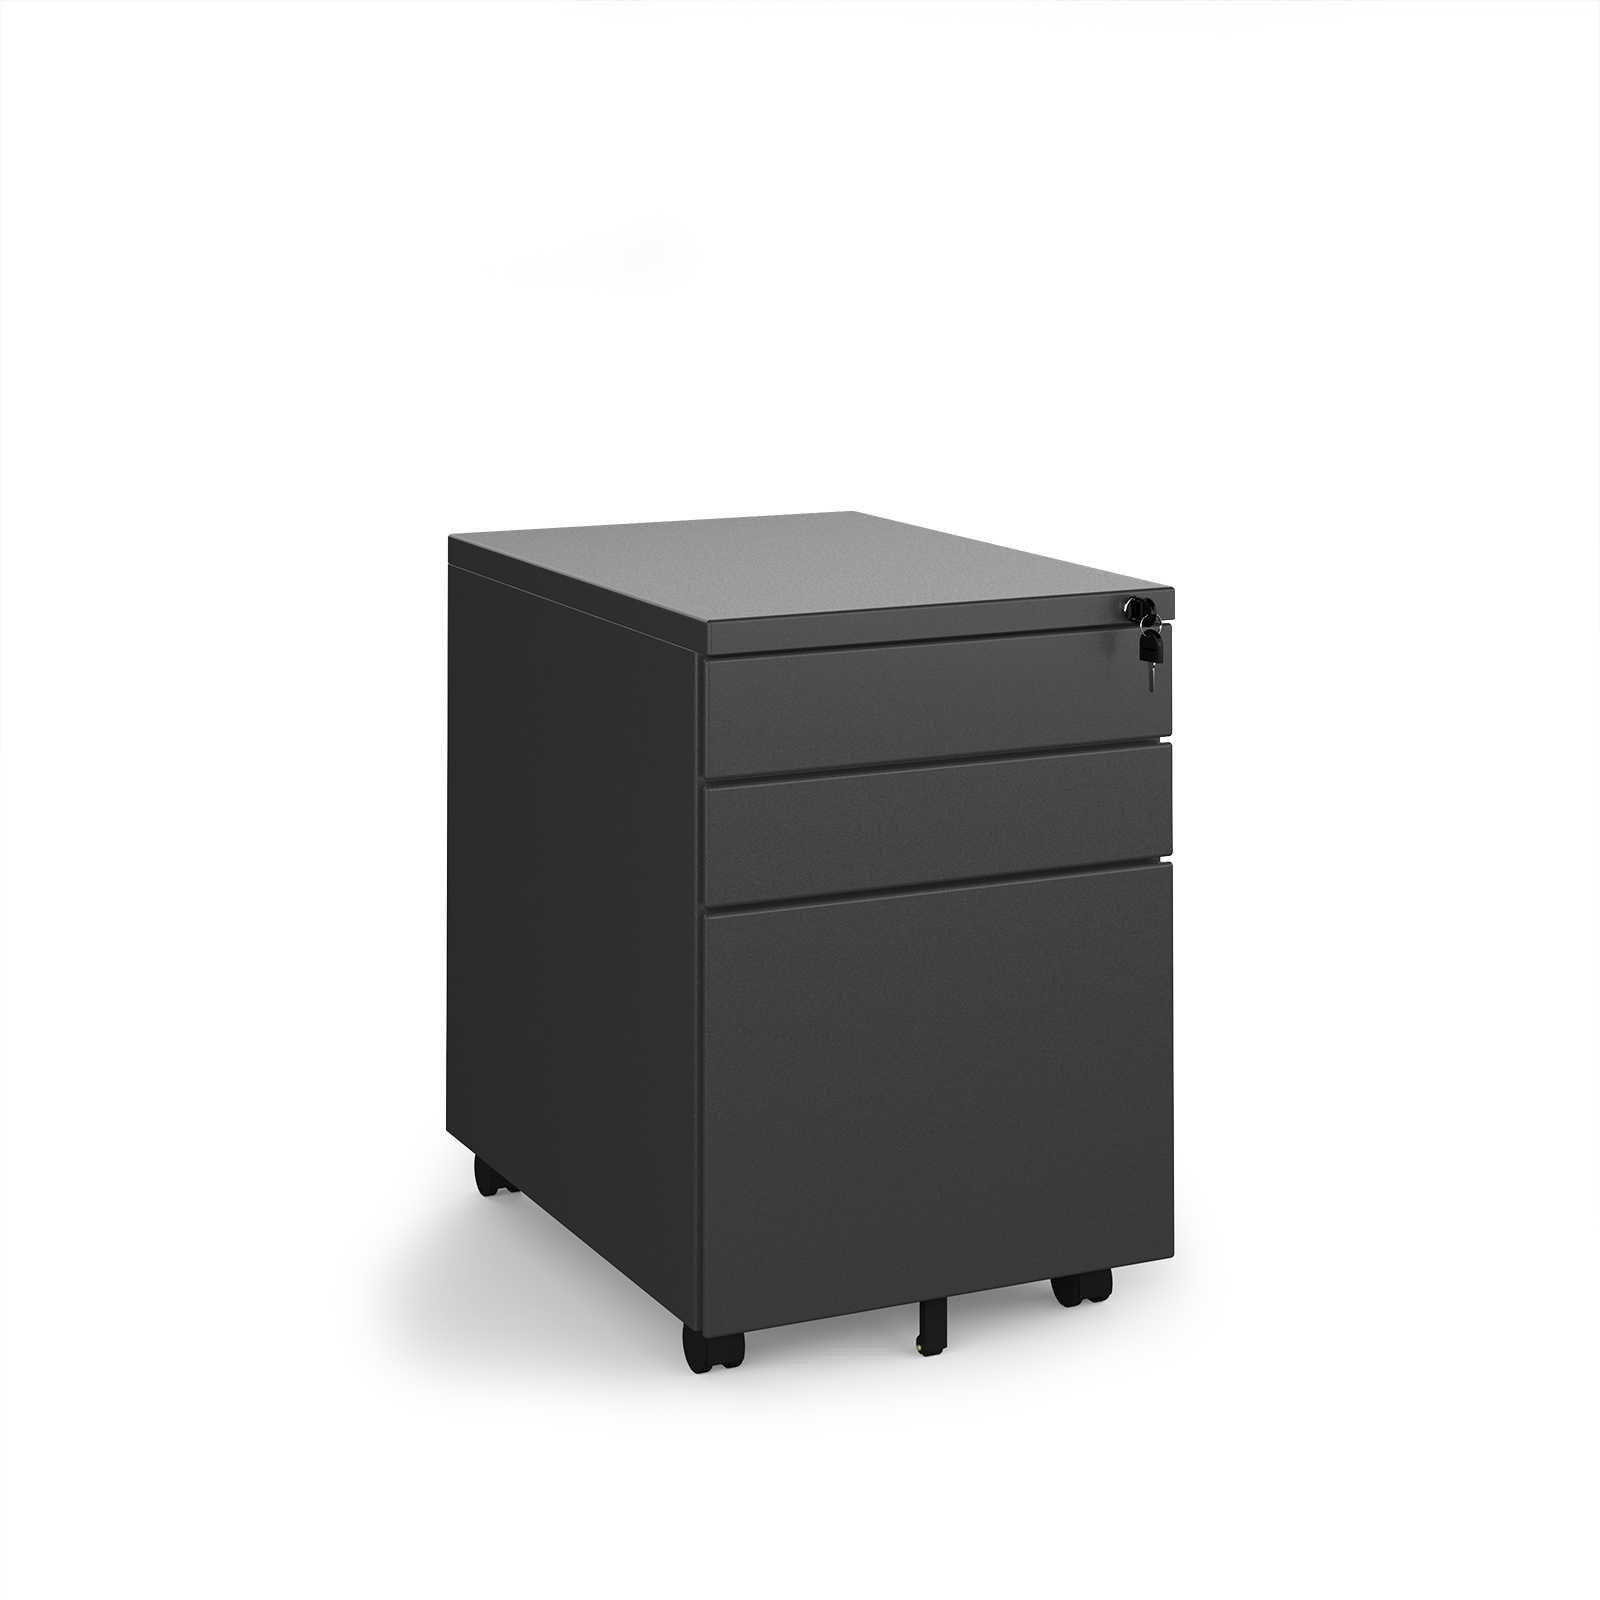 Steel 3 drawer wide mobile pedestal - black